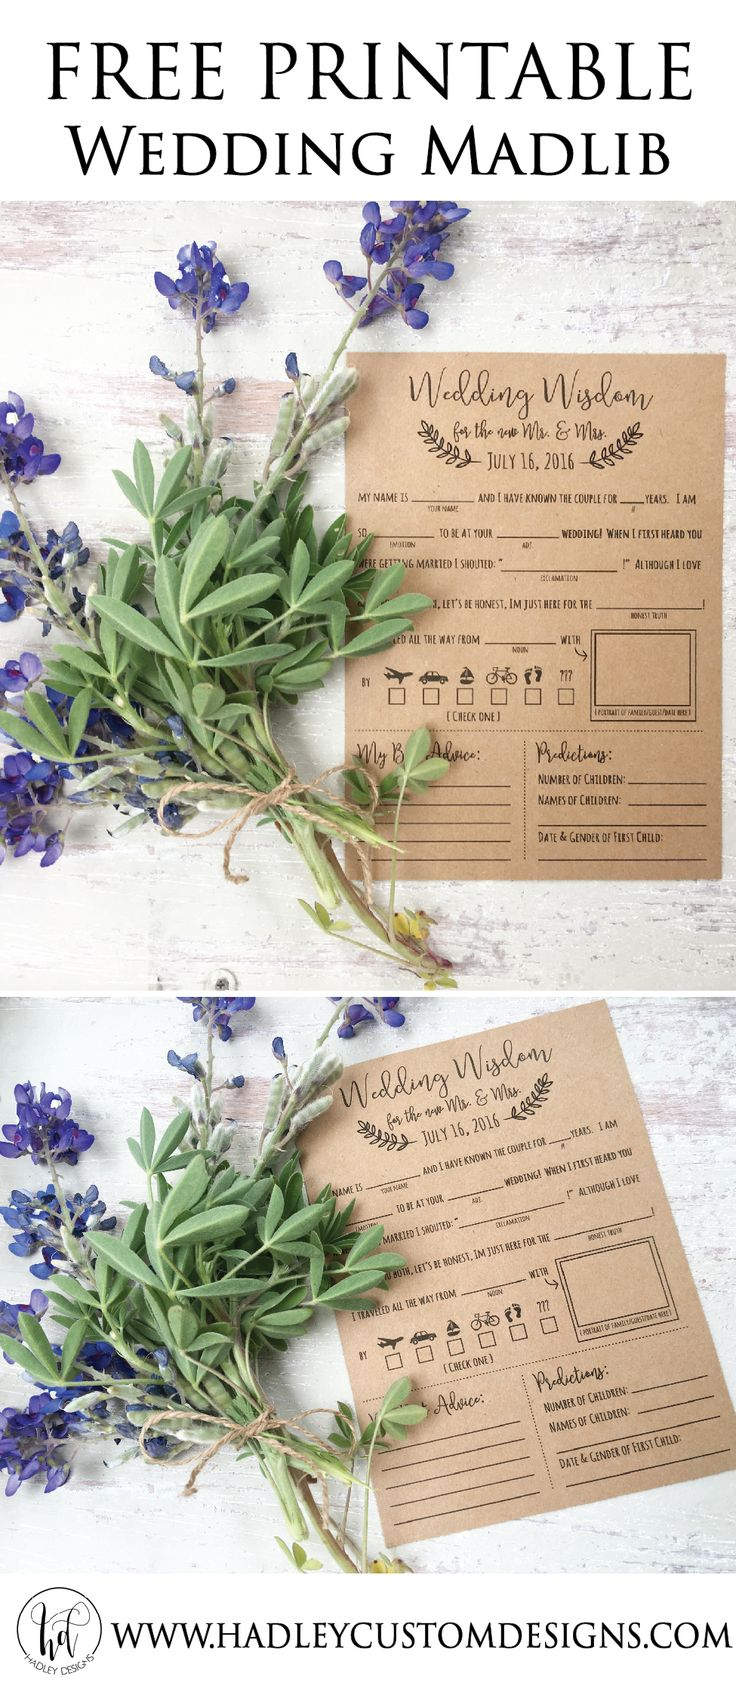 FREE madlib wedding printable!  A great way to entertain your guests and a fun keepsake for you!